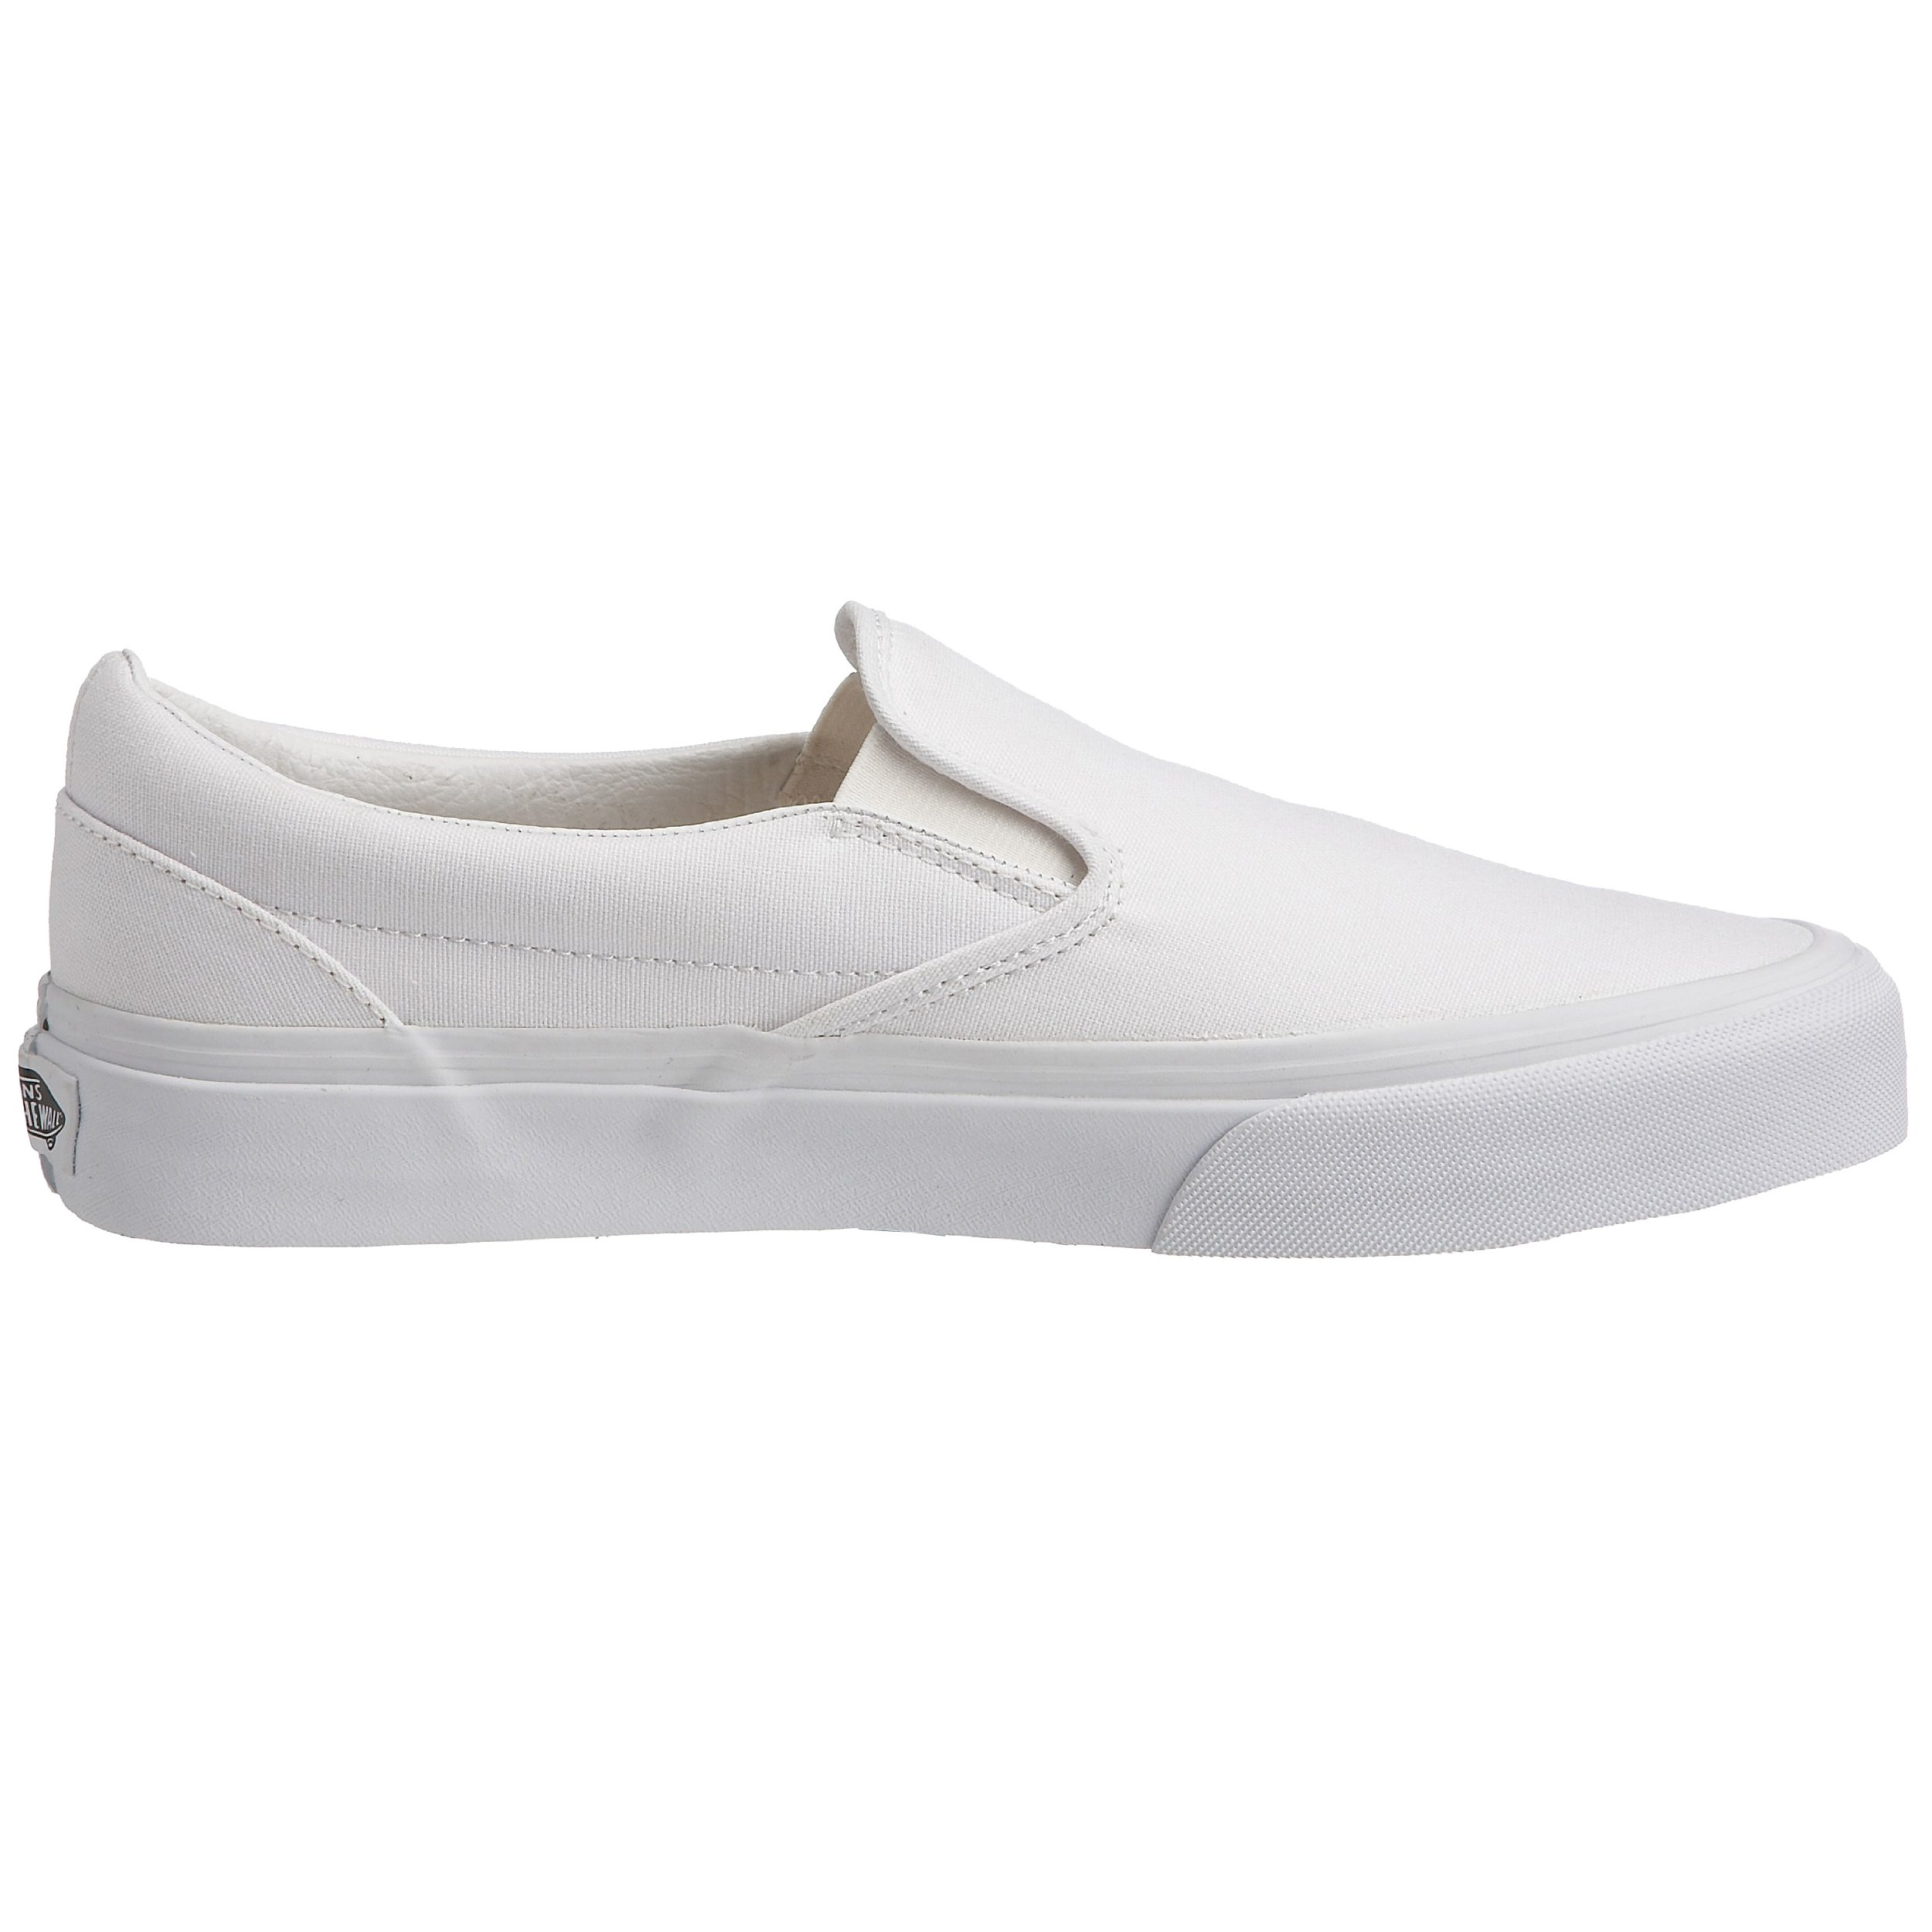 Vans Unisex Classic Slip-On(tm) Core Classics True White (Canvas) Sneaker Men's 6.5, Women's 8 Medium by Vans (Image #6)